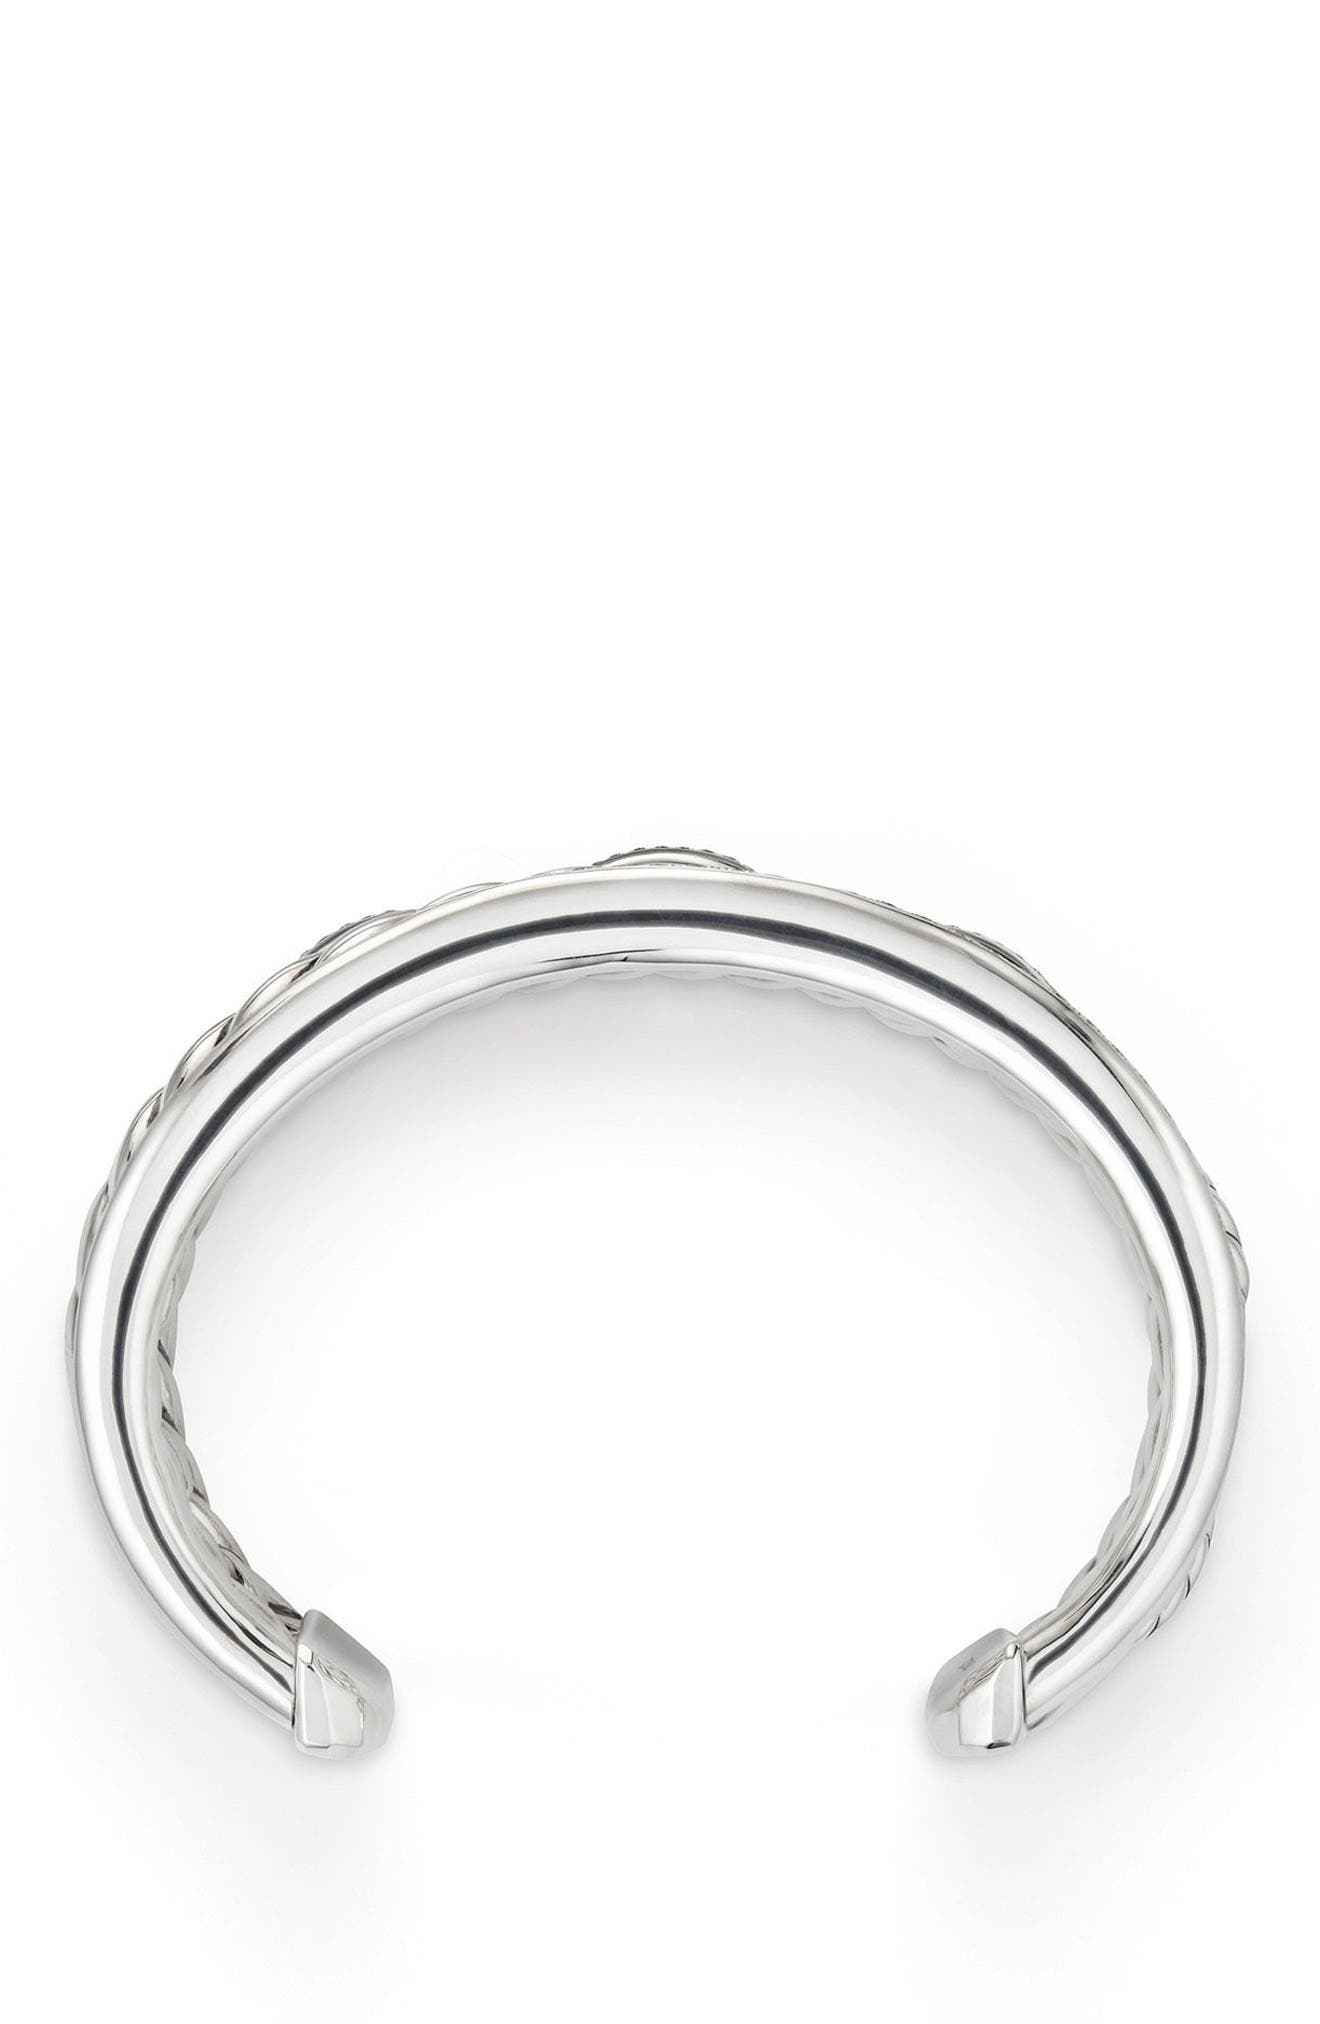 Wellesley Link Cuff with Diamonds, 27mm,                             Alternate thumbnail 2, color,                             SILVER